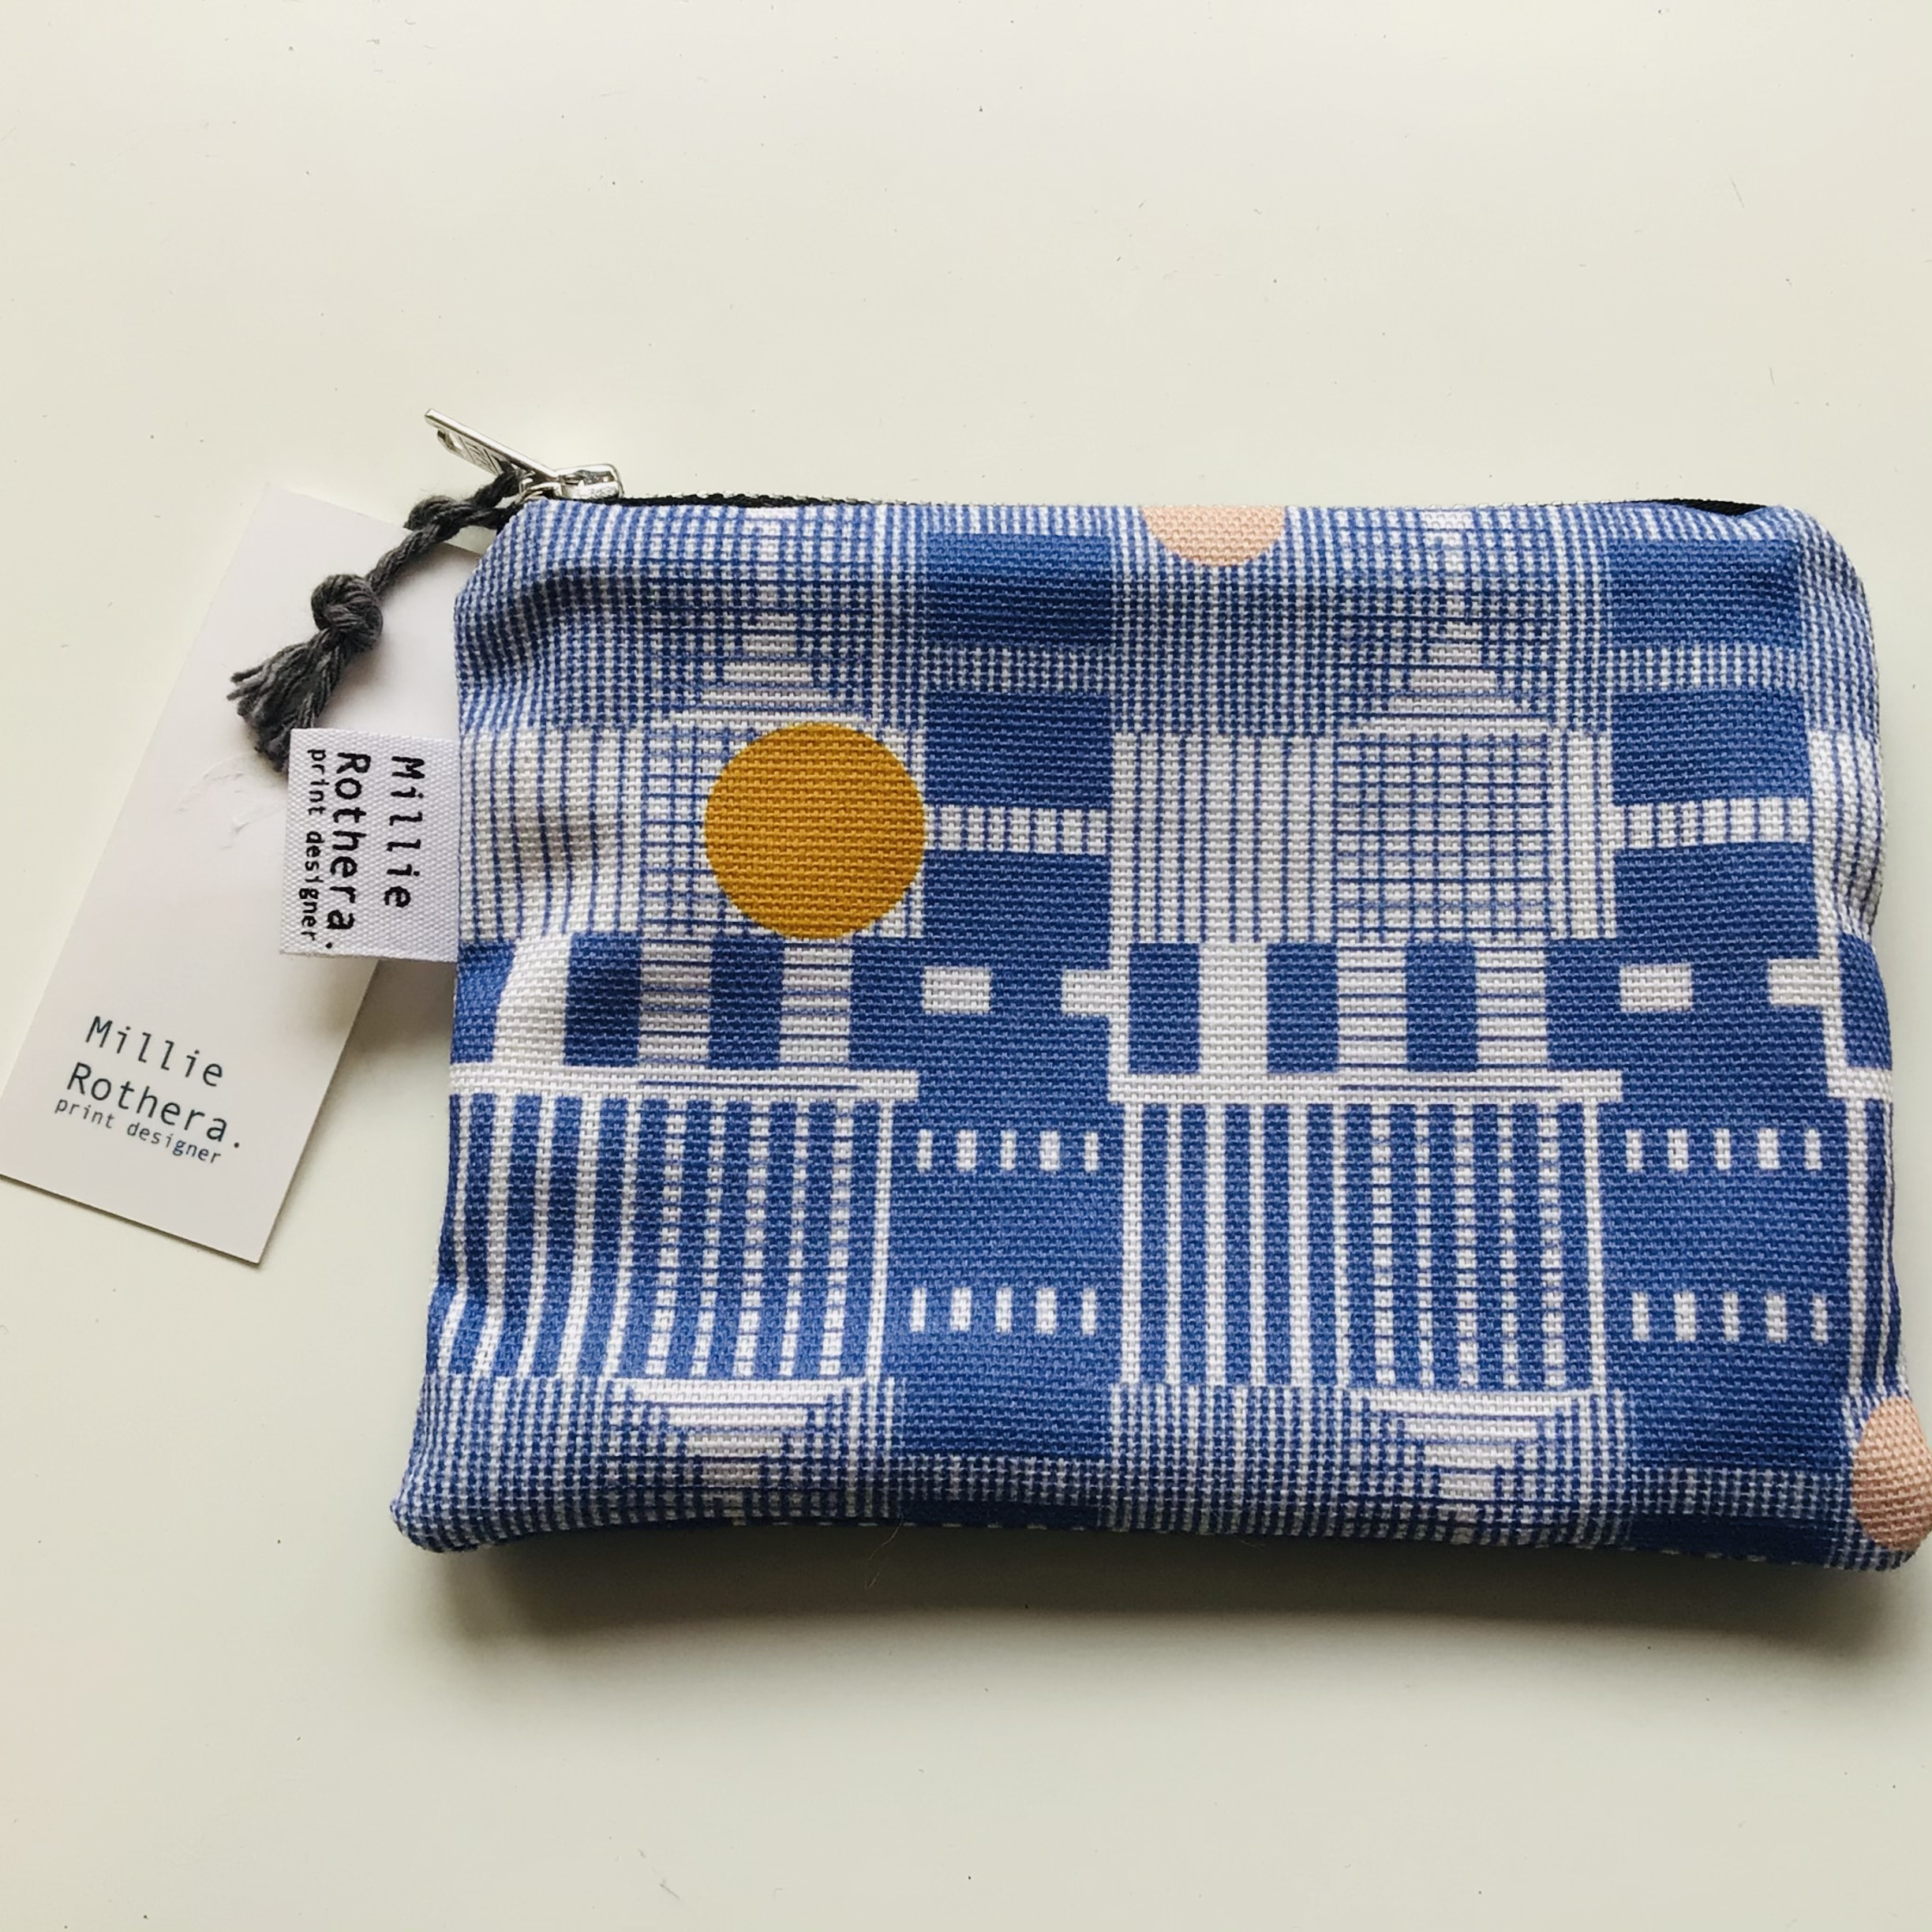 Millie Rothera Coin Pouch purse Blue Grid